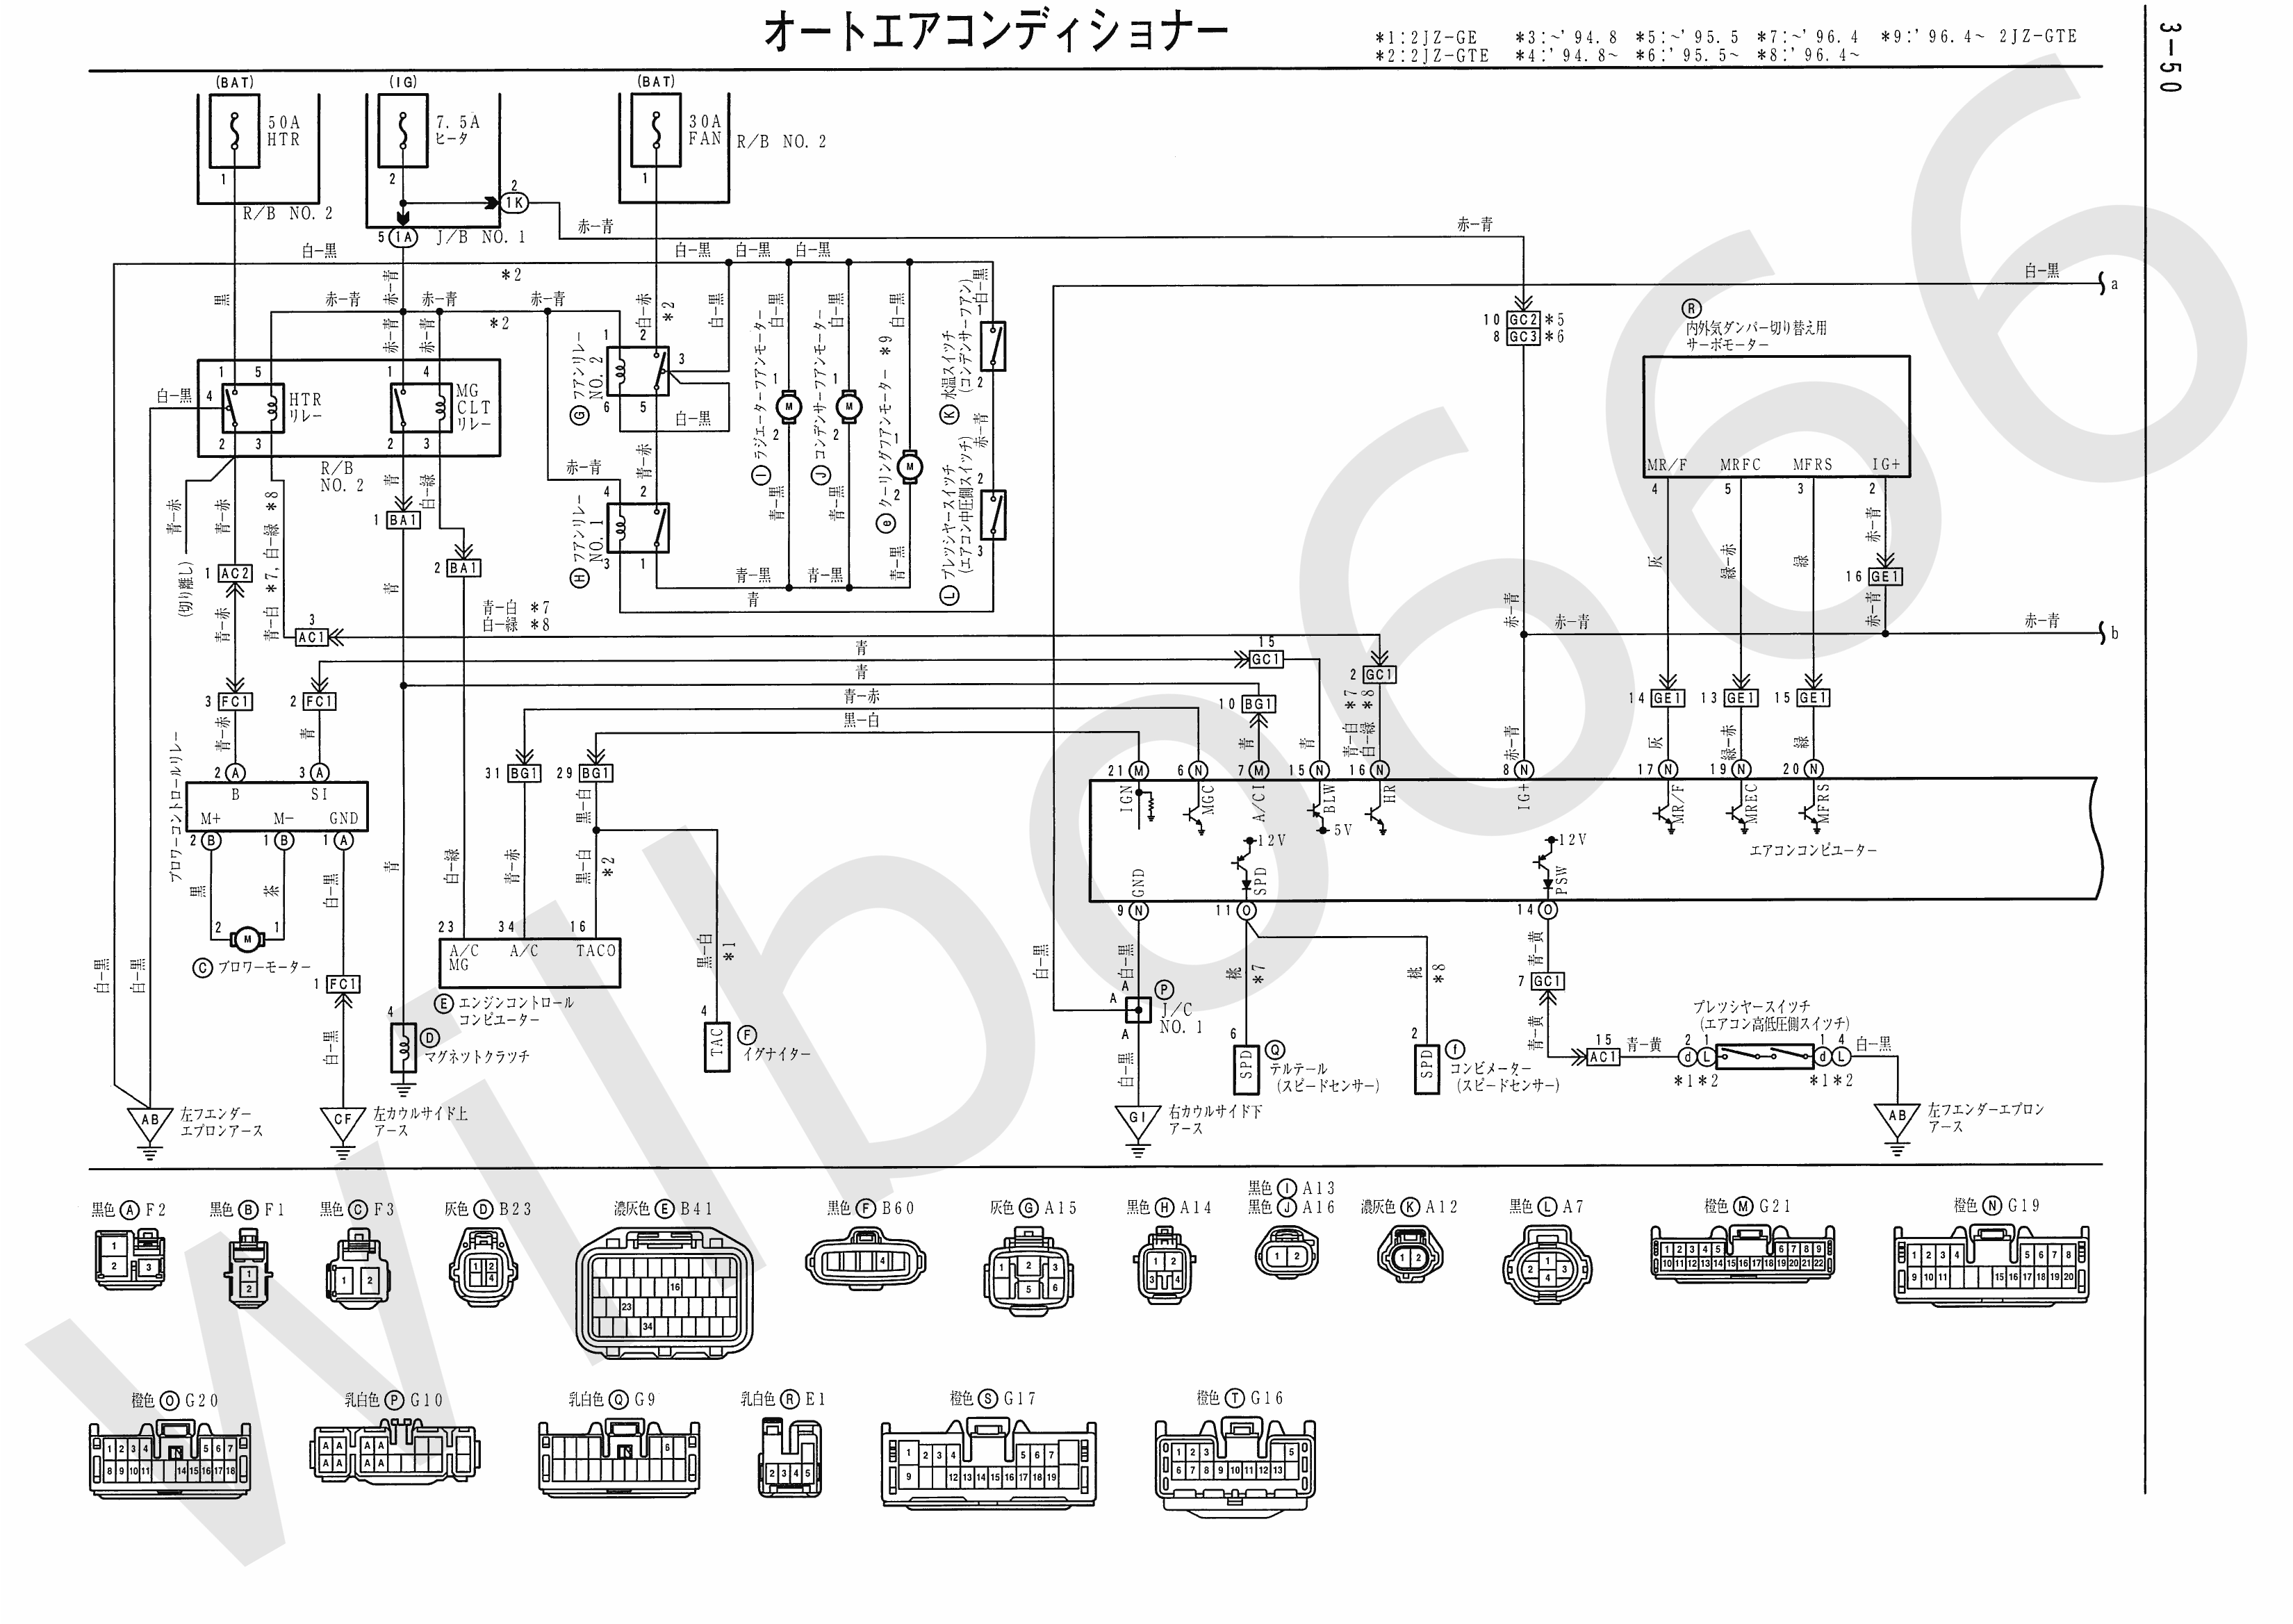 Supra Fuse Box Automotive Wiring Diagram 1998 Honda Civic Toyota Library Rh 37 Yoobi De Relocation